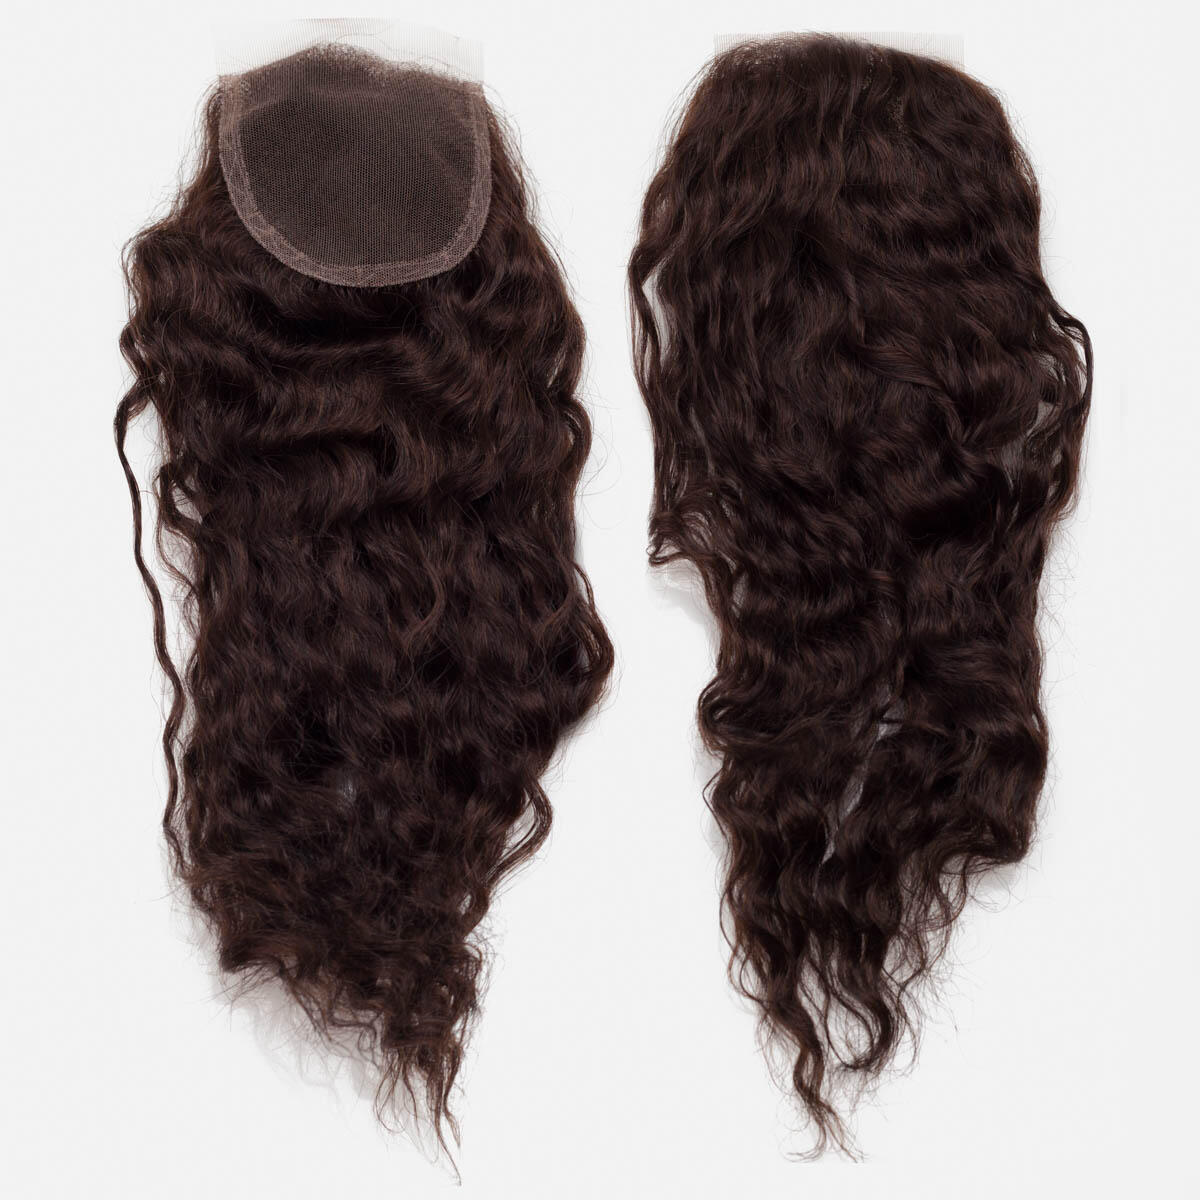 Lace Closure Curly Curls 2.3 Chocolate Brown 35 cm